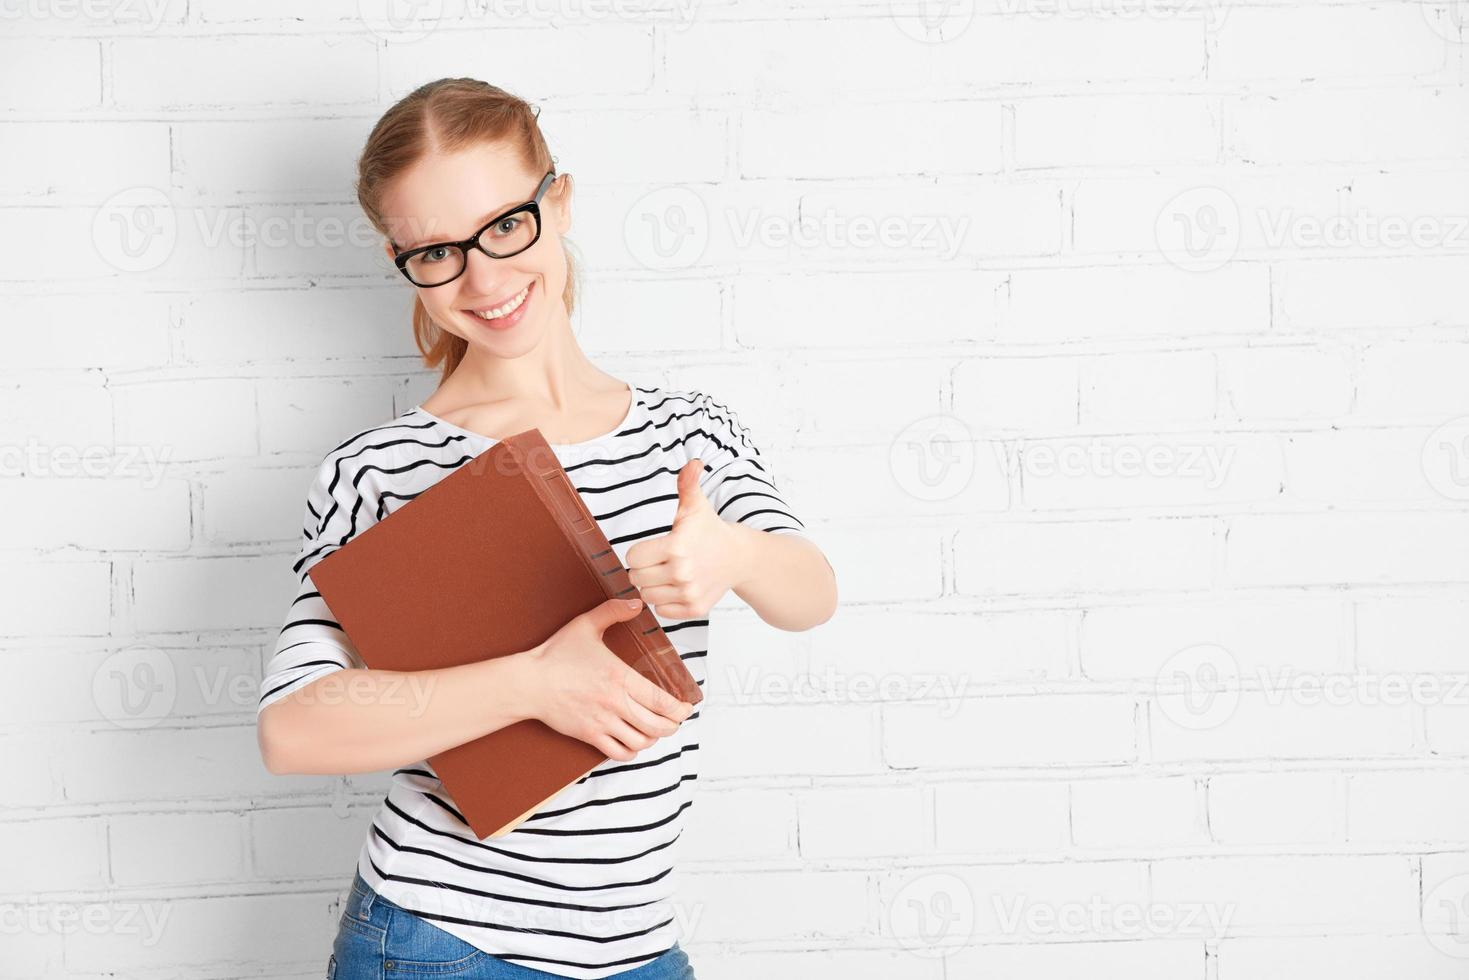 Happy successful student girl with book showing thumbs up photo